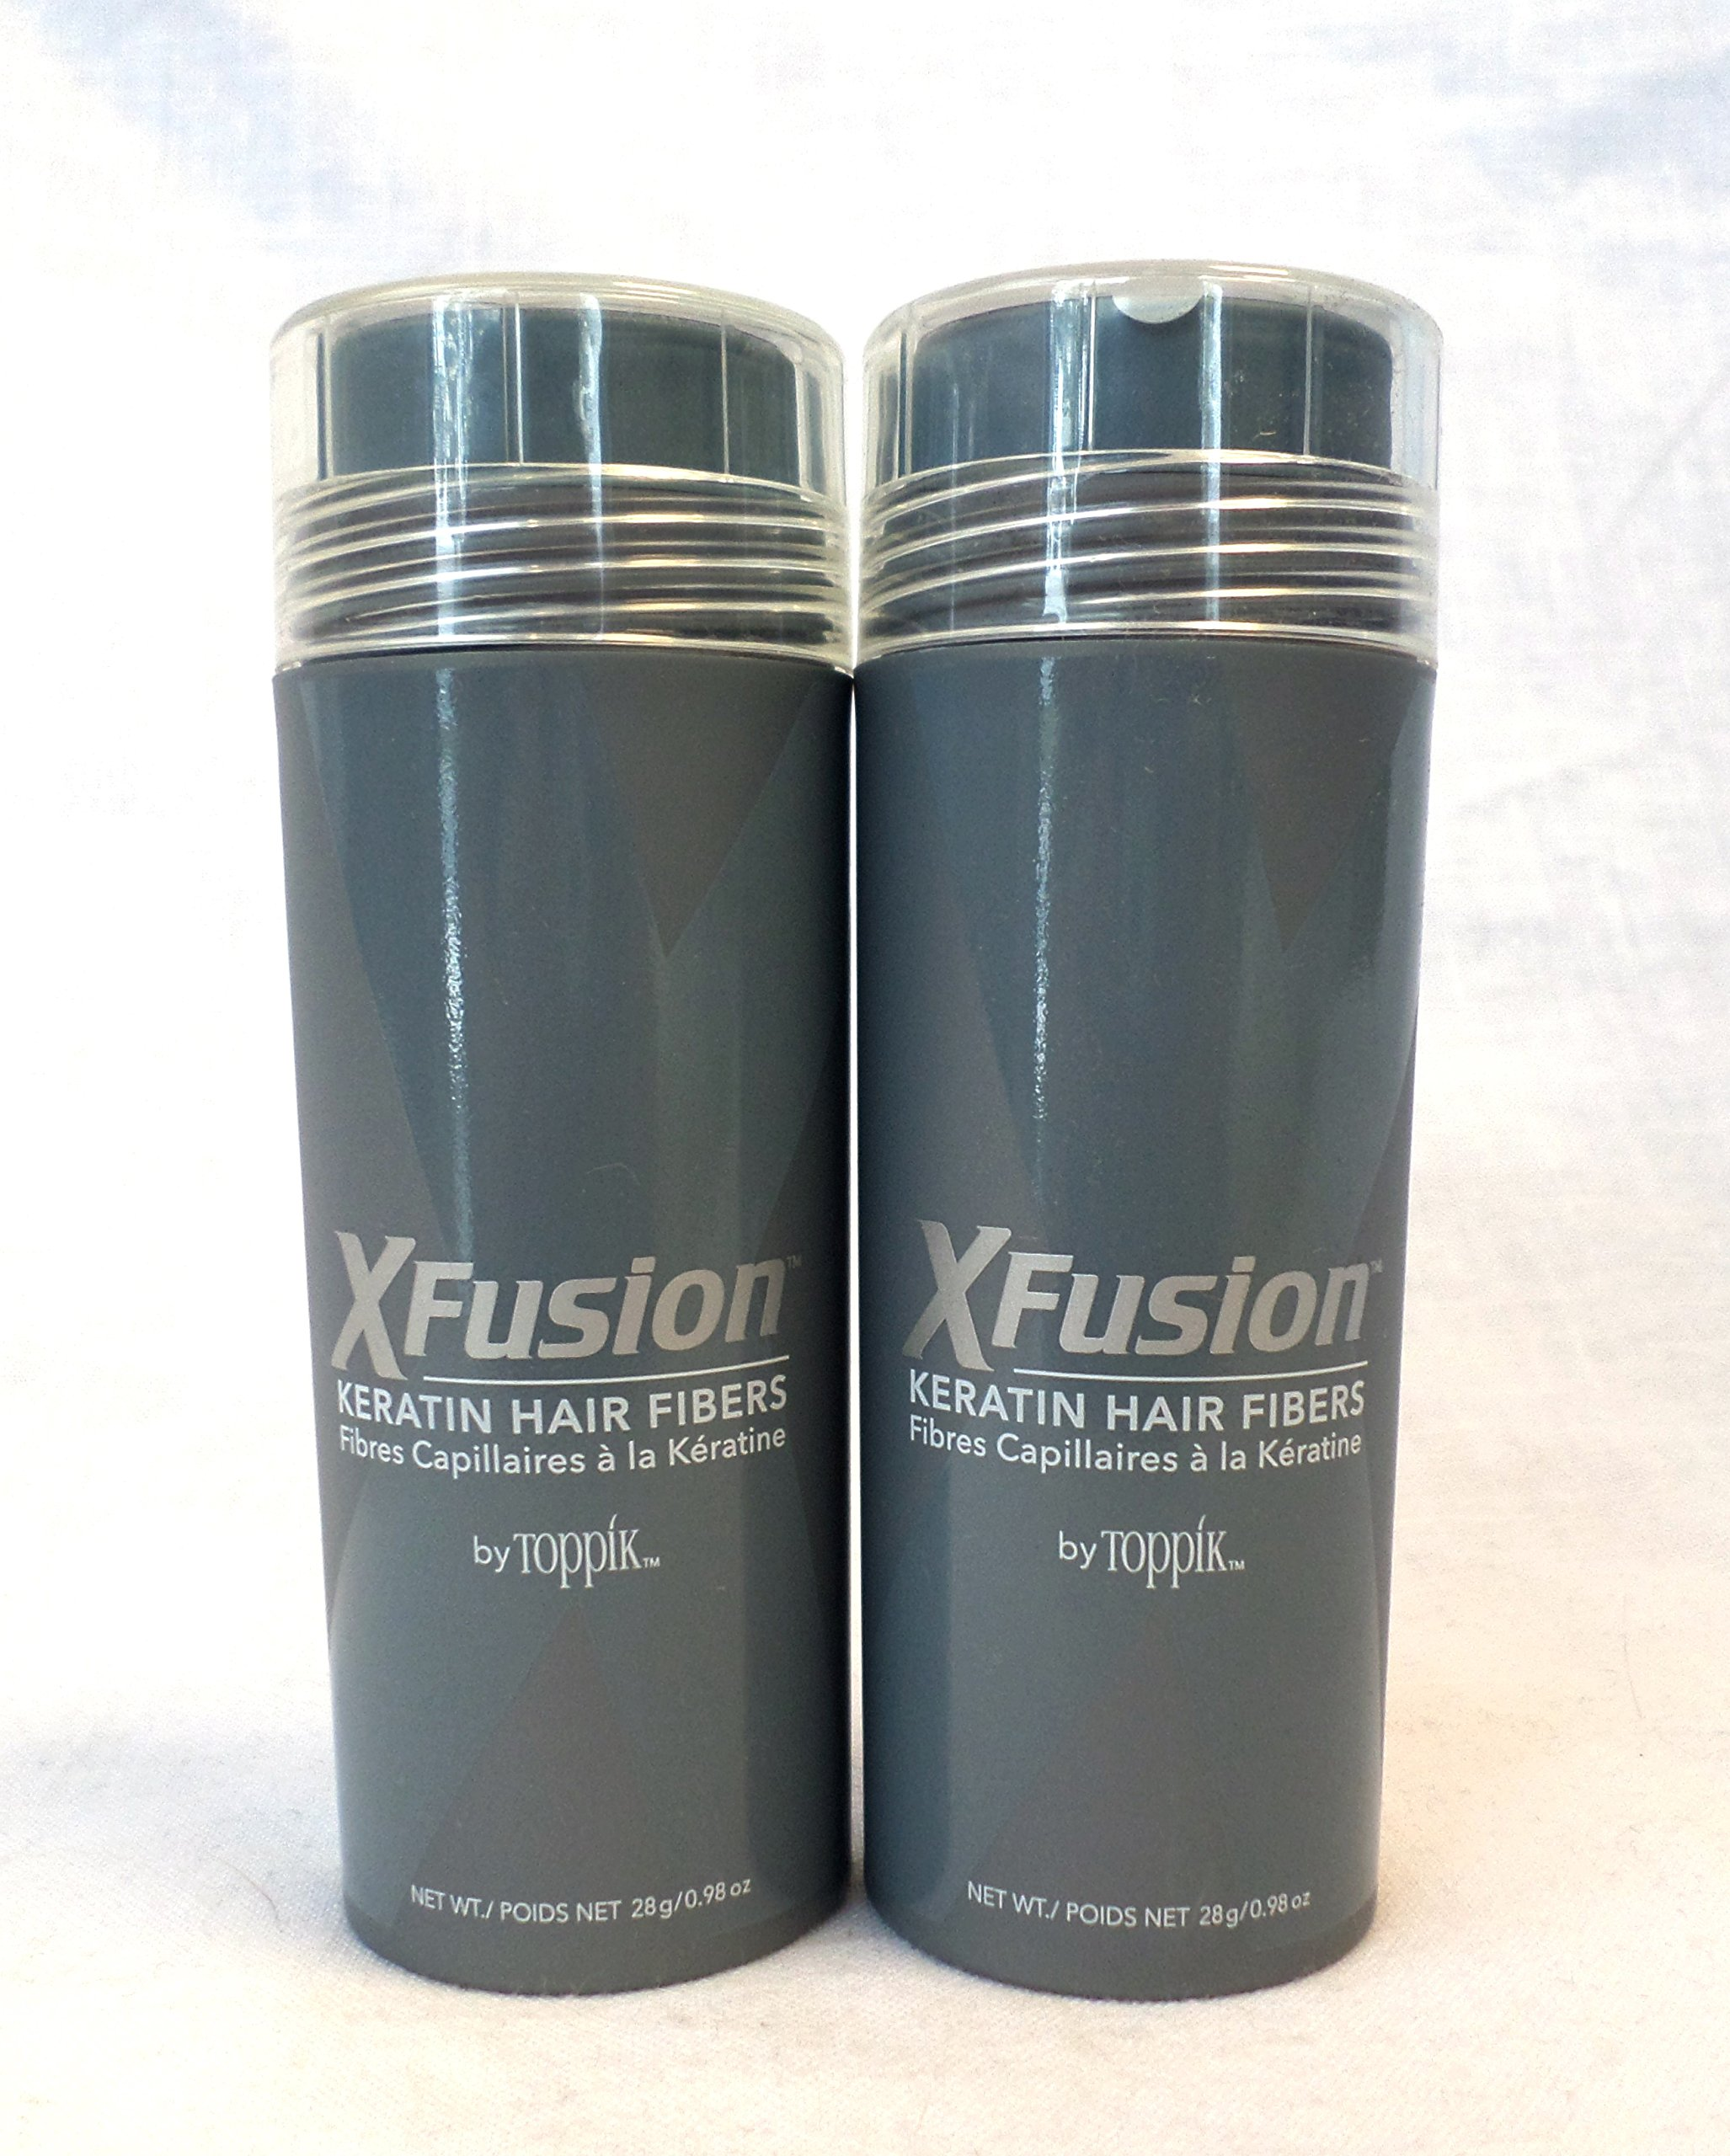 XFusion Keratin Hair Fibers 28g - 2 Piece Special (Medium Brown)